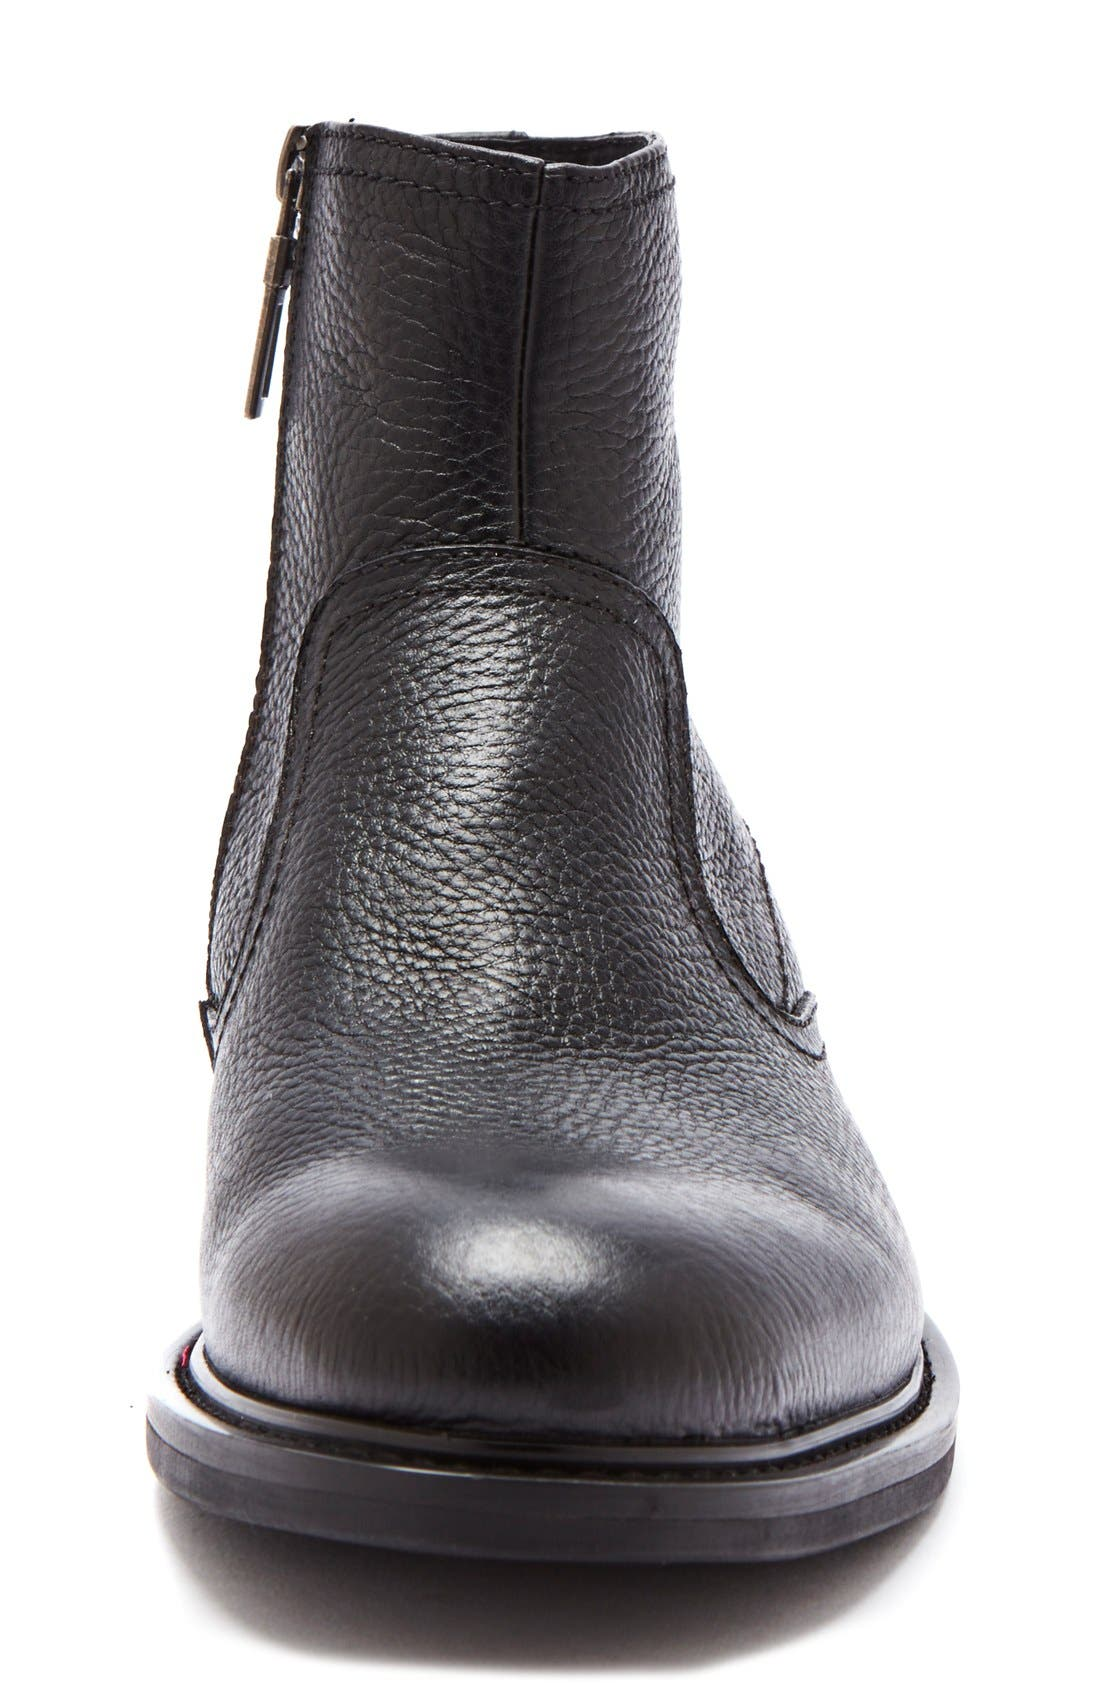 'Fried' Waterproof Zip Boot,                             Alternate thumbnail 3, color,                             Black Leather